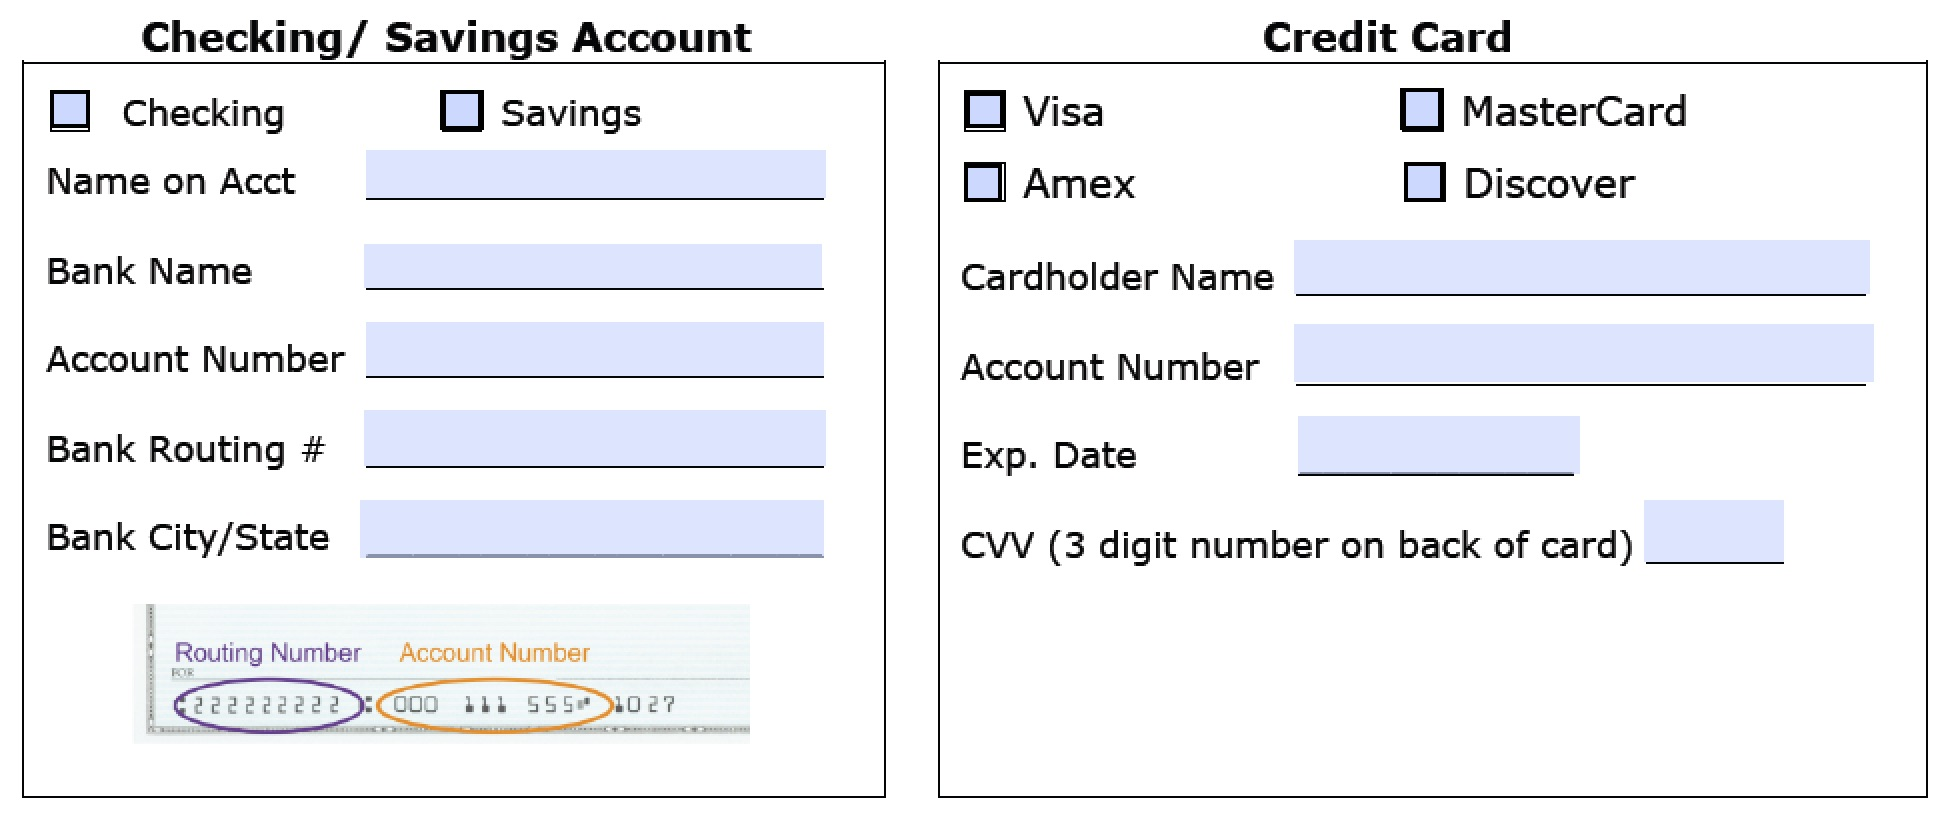 ach forms templates Download Recurring Payment Authorization Form Template | Credit Card ...